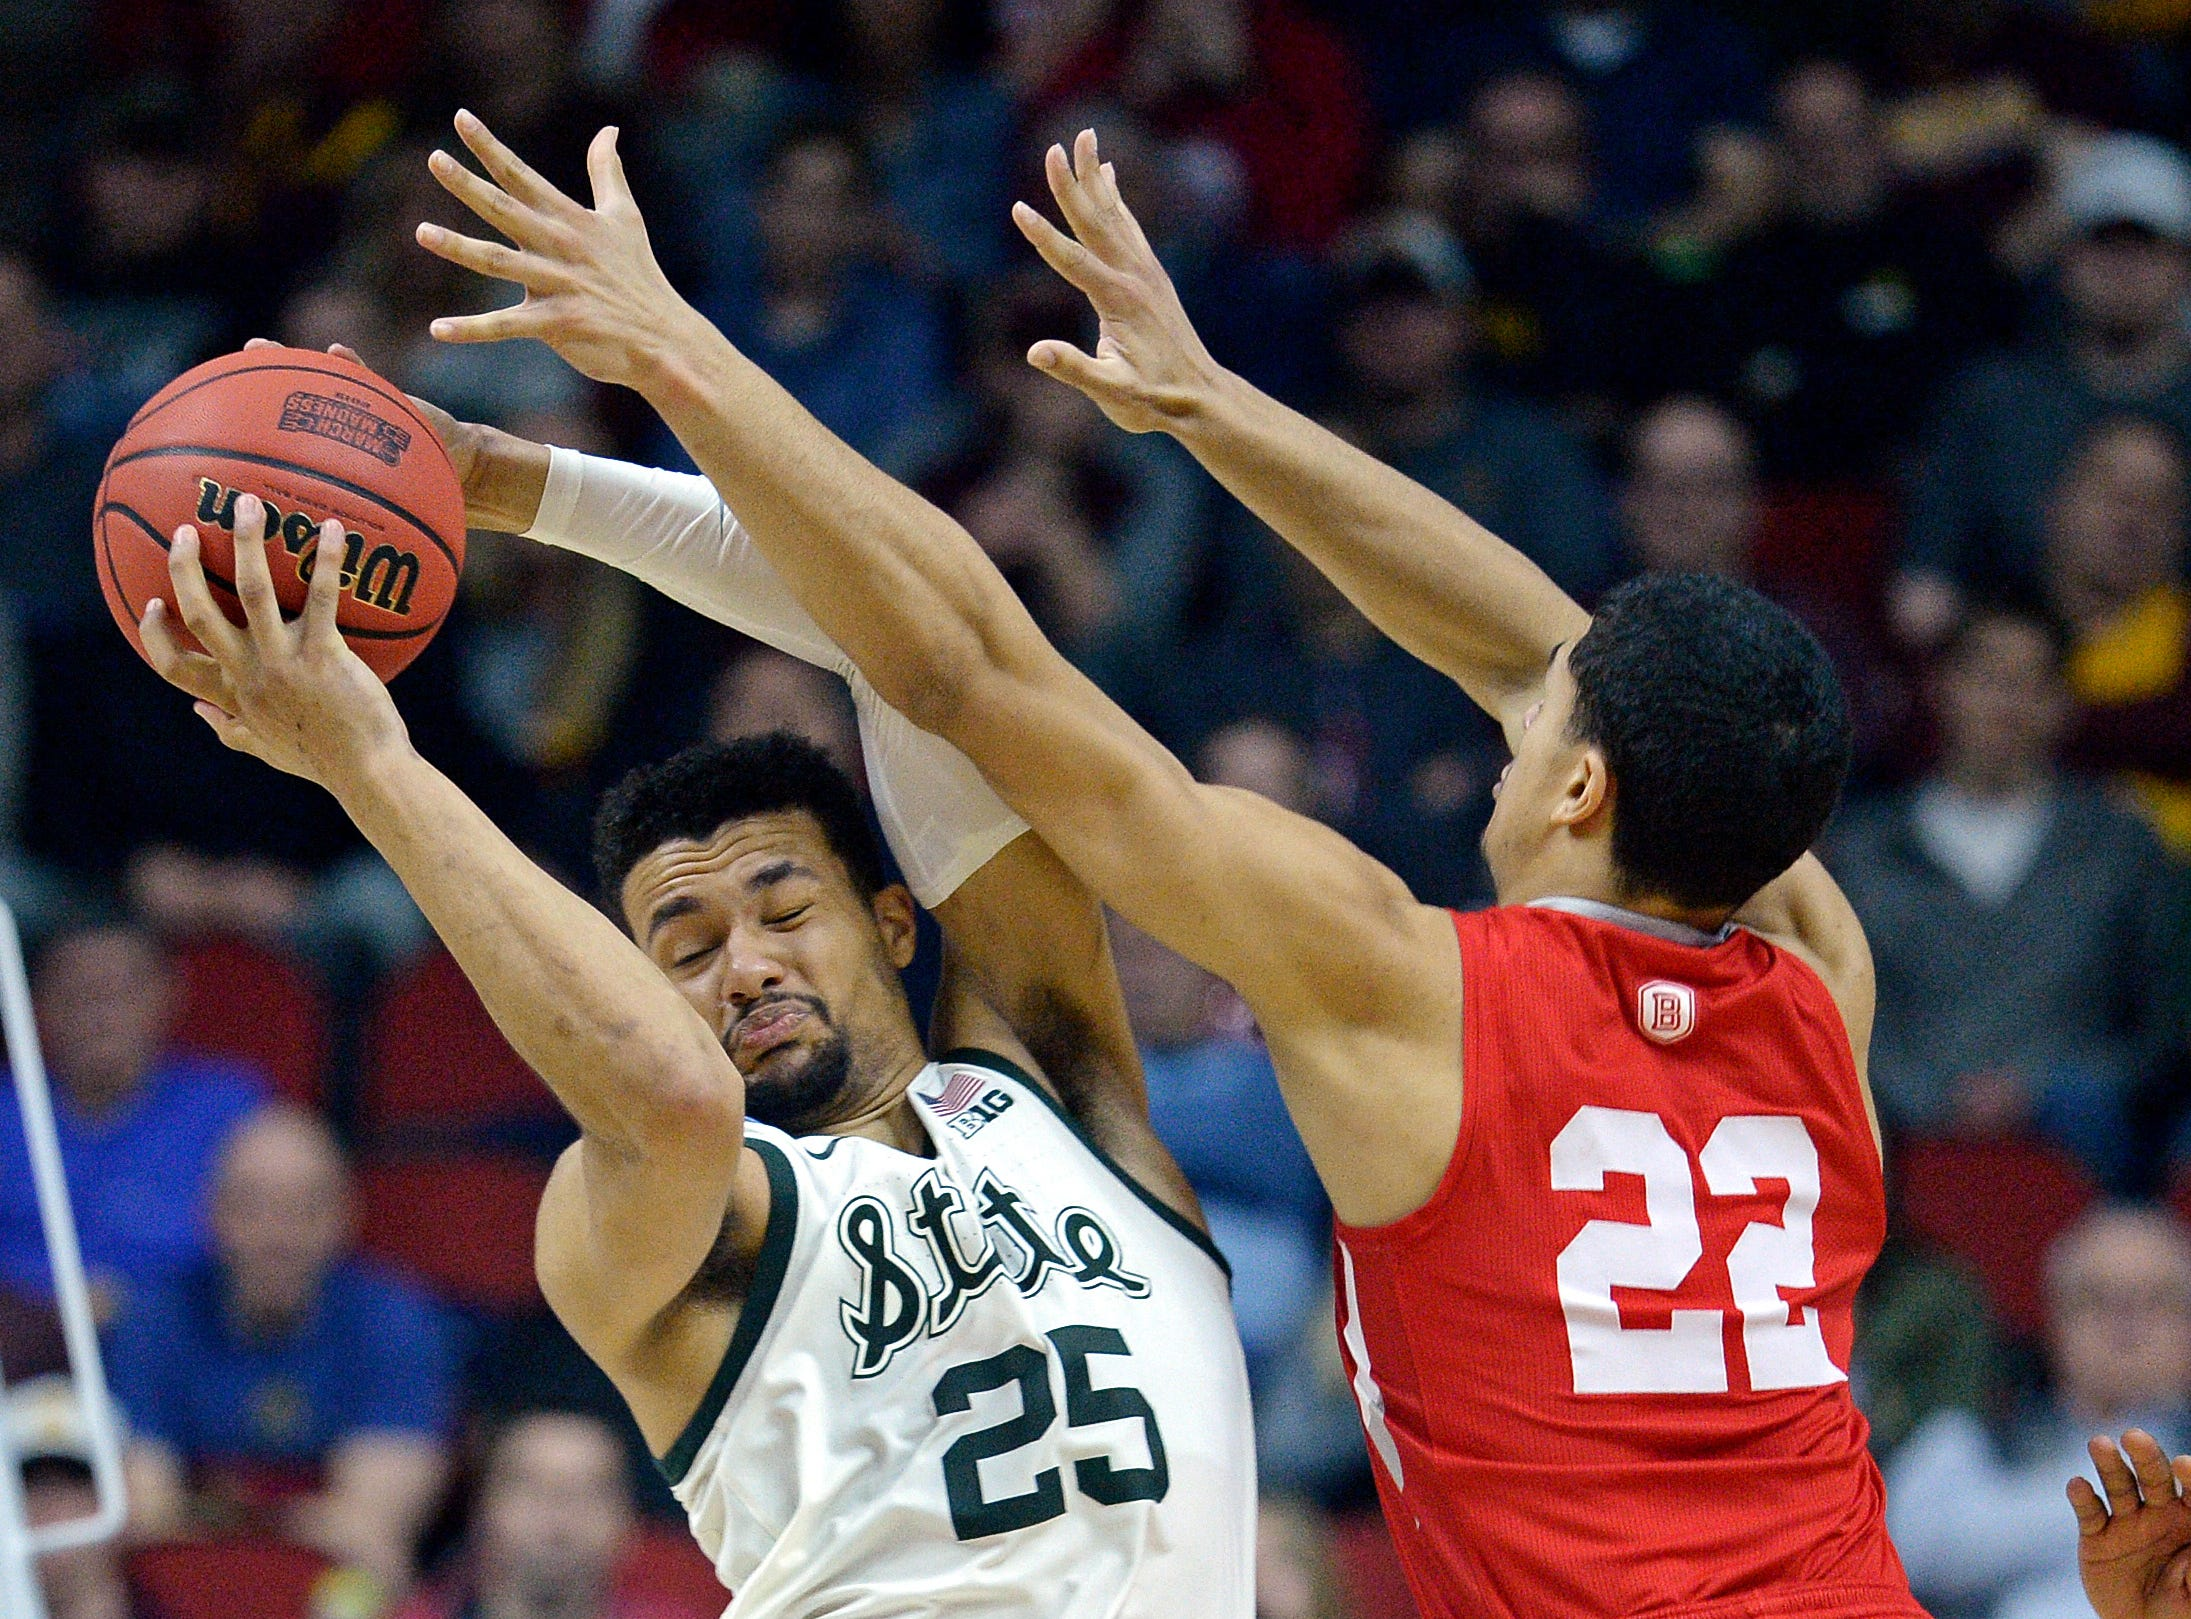 Michigan State Spartans forward Kenny Goins (25) and Bradley Braves guard Ja'Shon Henry (22) go for a rebound during the second half in the first round of the 2019 NCAA Tournament at Wells Fargo Arena.